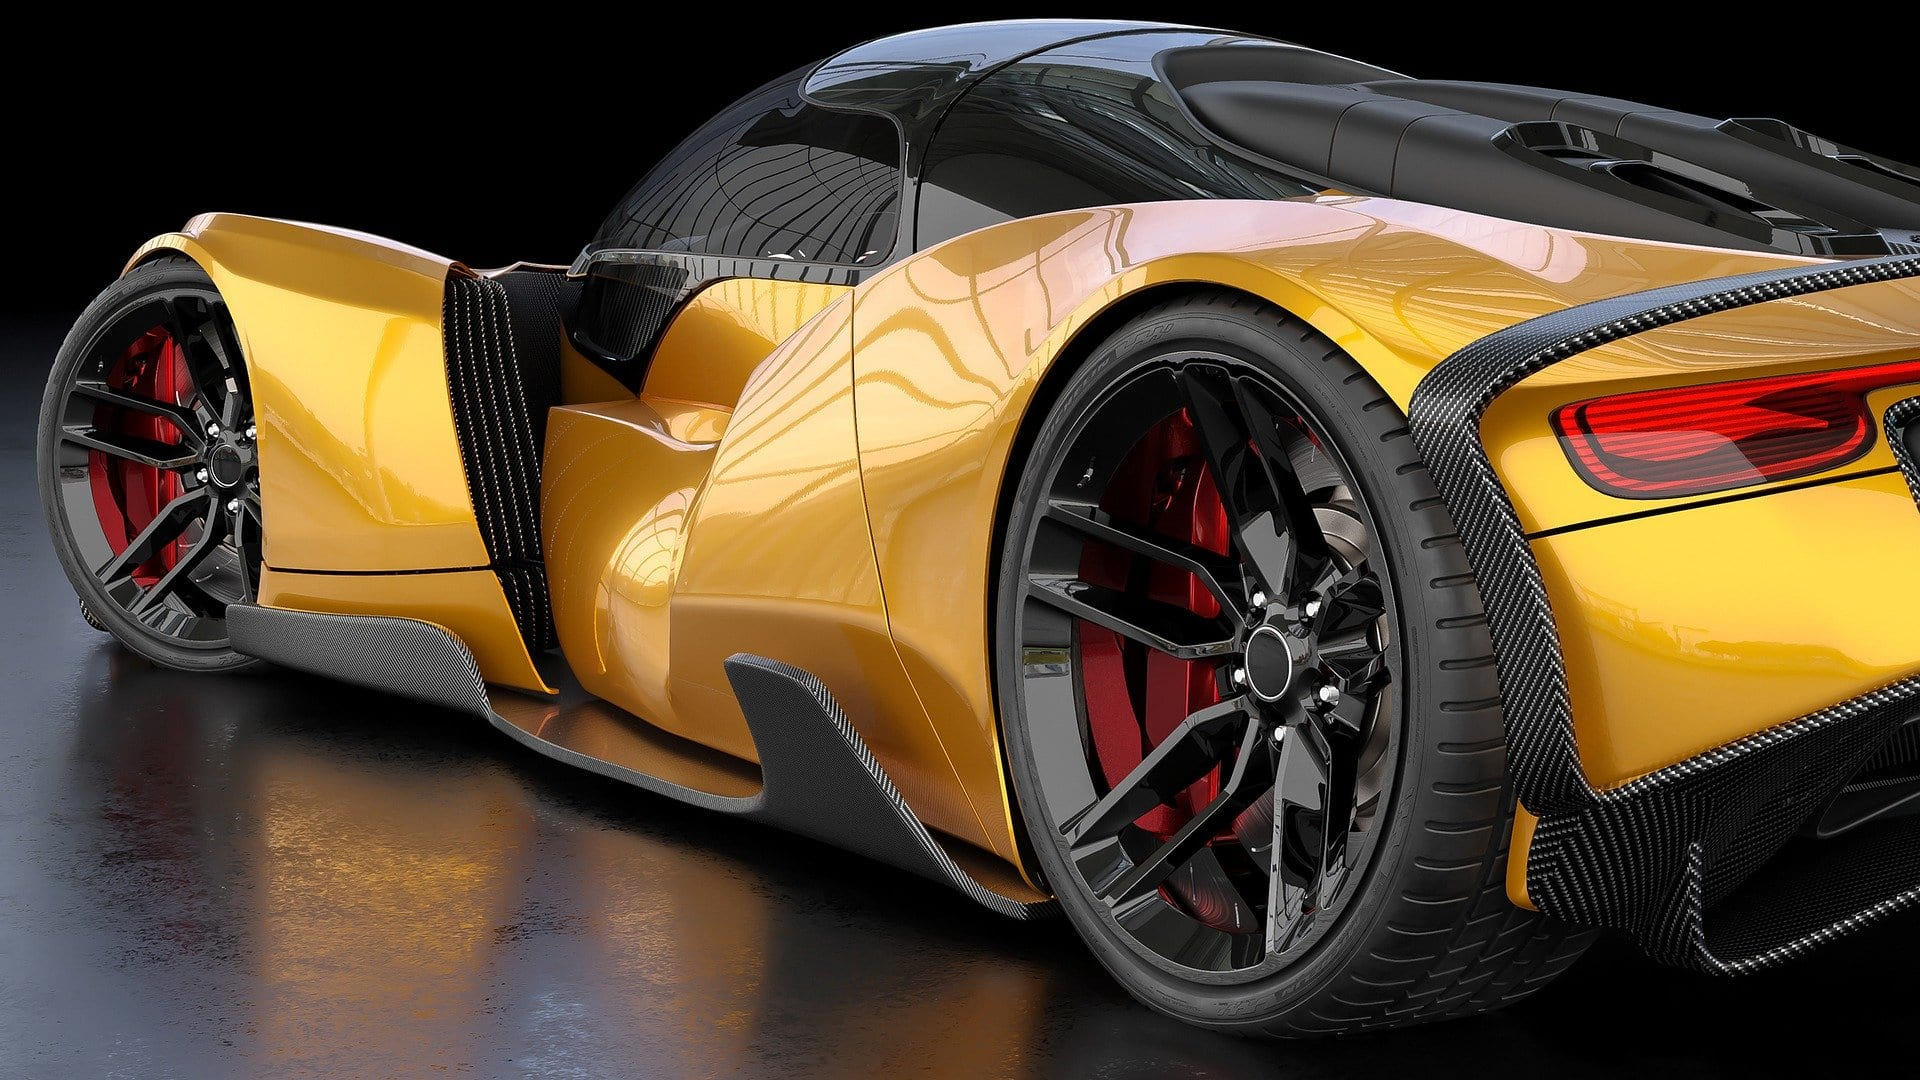 Top 10 Coolest Cars in the World 2020